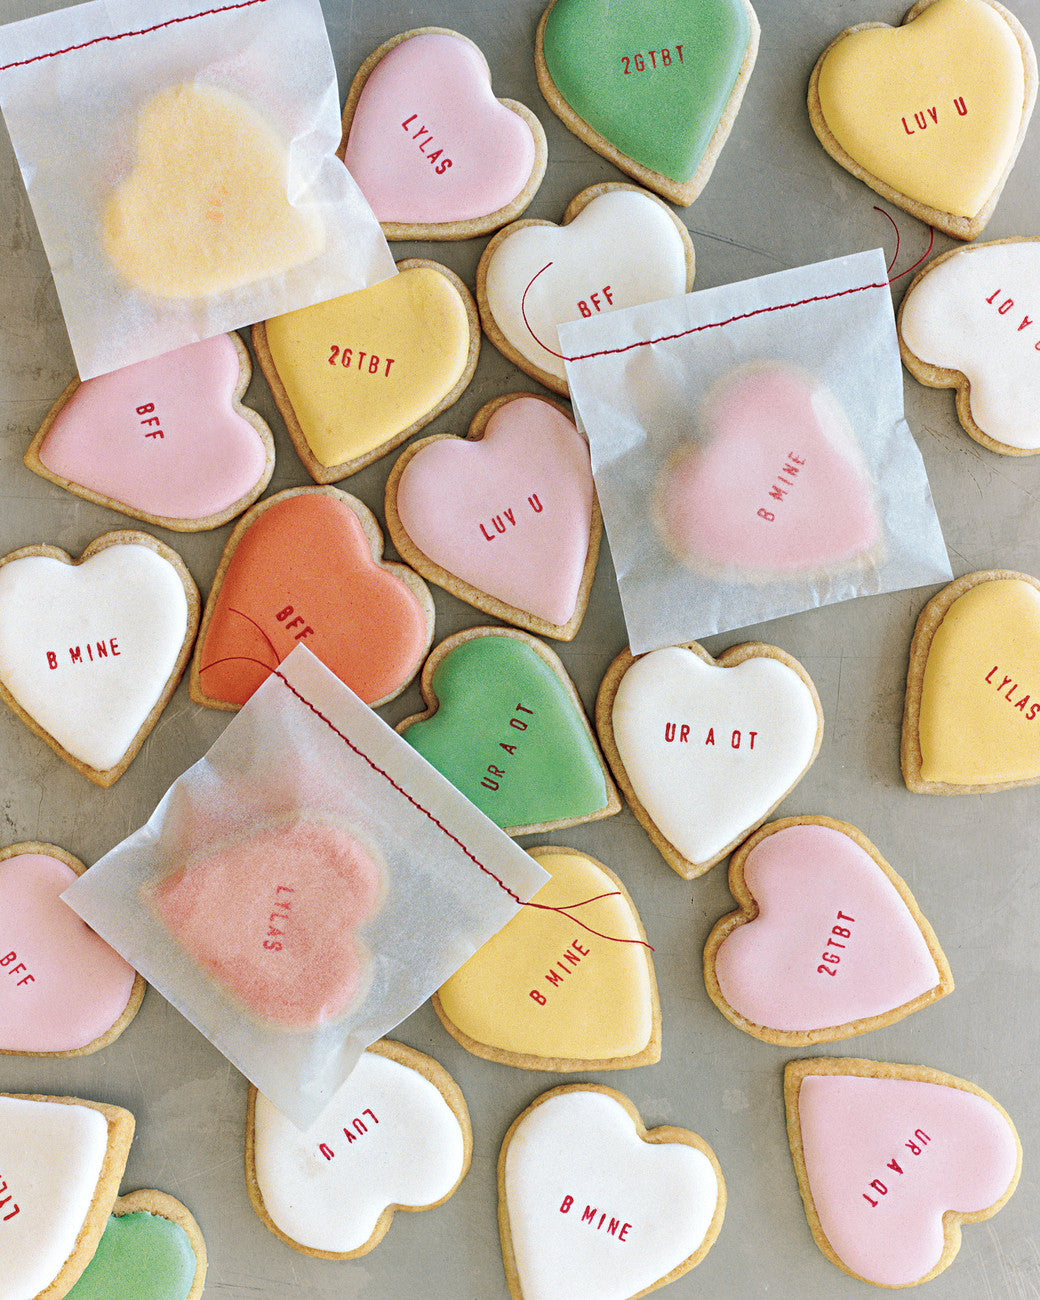 14 Valentine's Day Baking Recipes to Make Your BF/GF Swoon | Sauce + Style Blog (pigofthemonth.com)